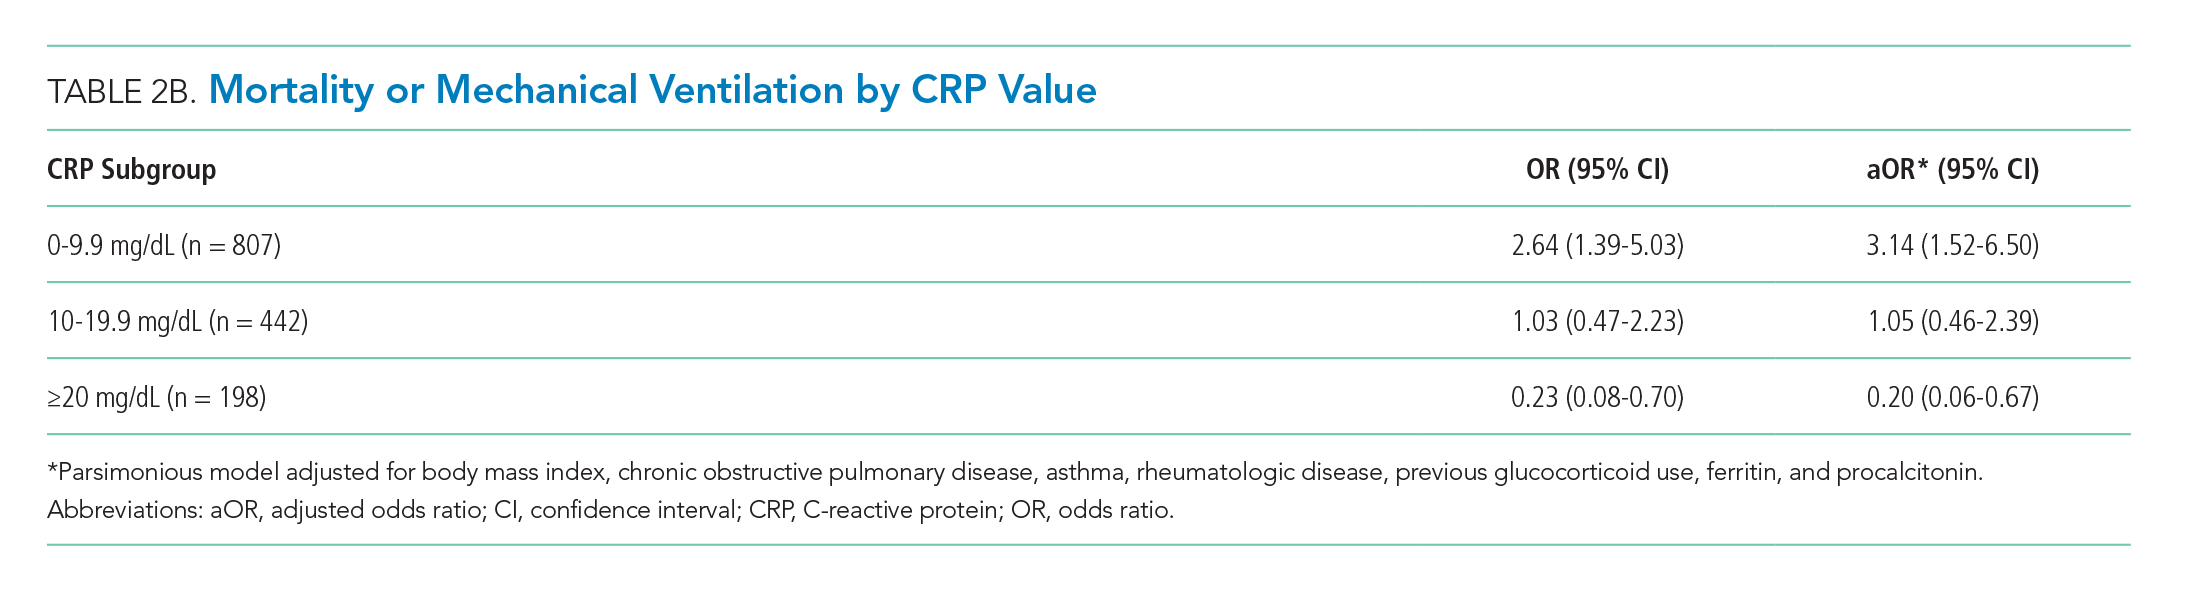 Mortality or Mechanical Ventilation by CRP Value